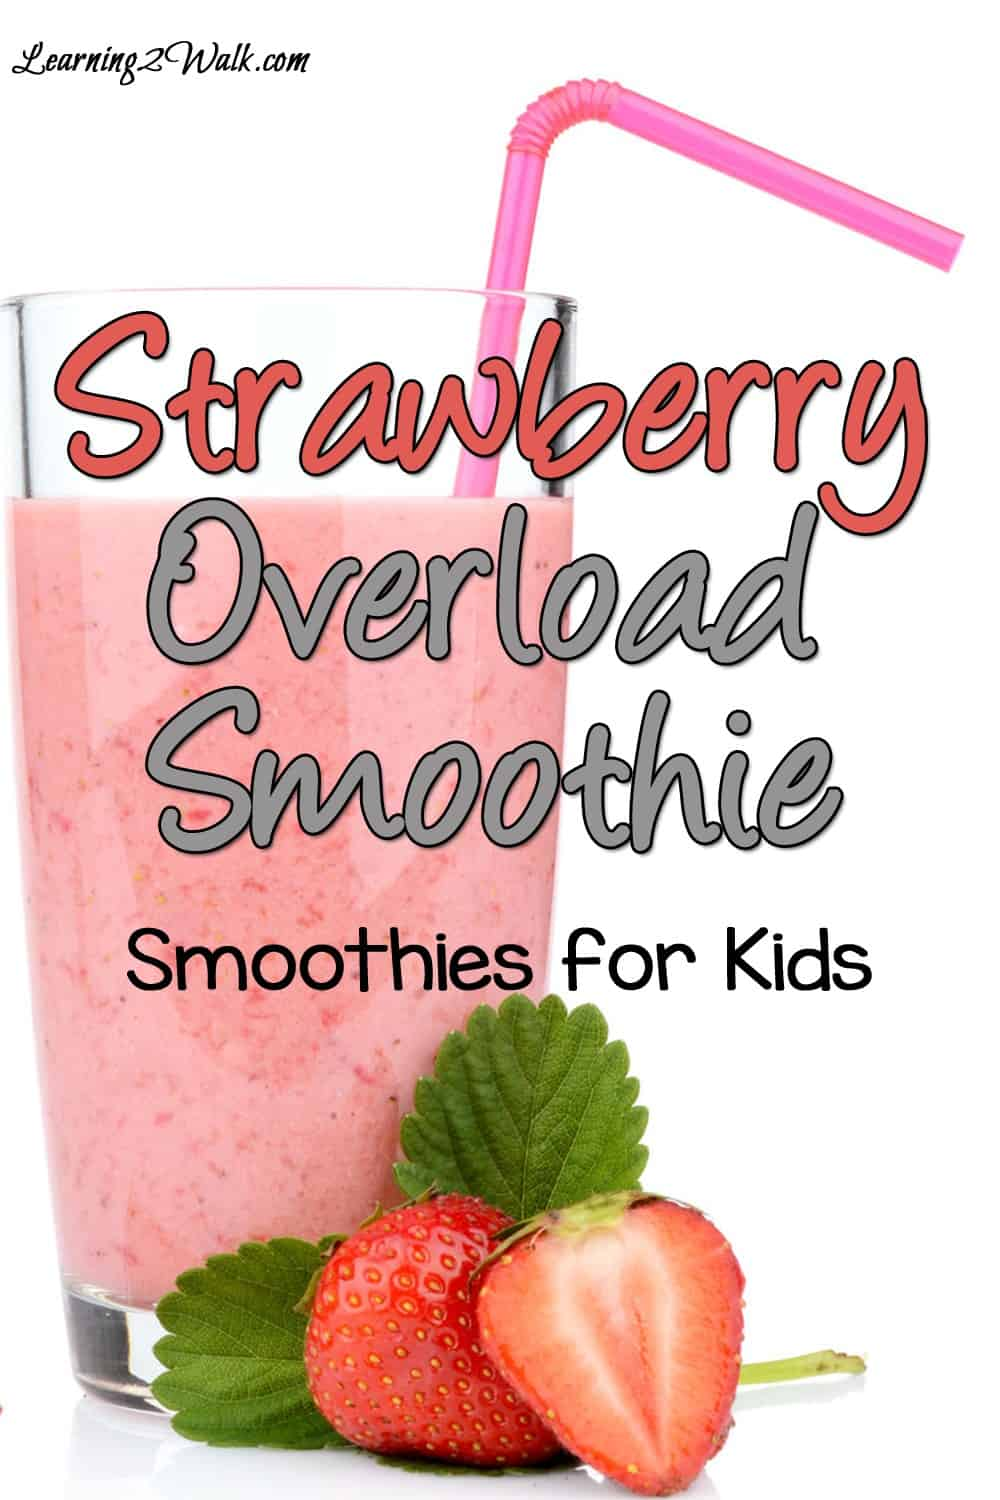 If your kids are anything like mine, you need to find creative ways to get your kids to eat fruits and vegetables. If you are looking for a few smoothies for kids, try this strawberry overload smoothie.